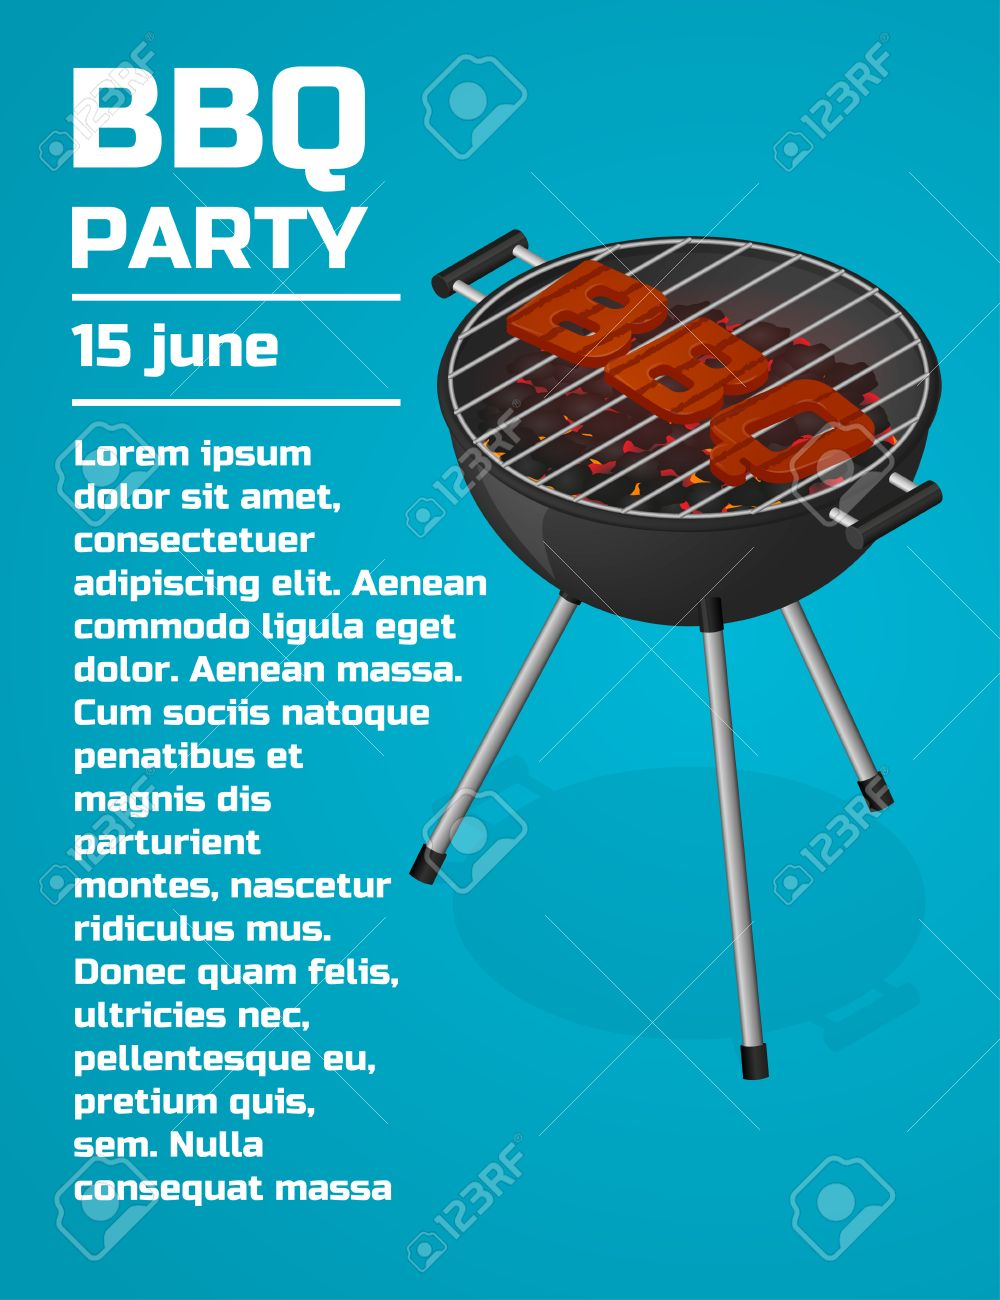 BBQ Party Invitation Background. Barbecue Grill Brochure Template ...